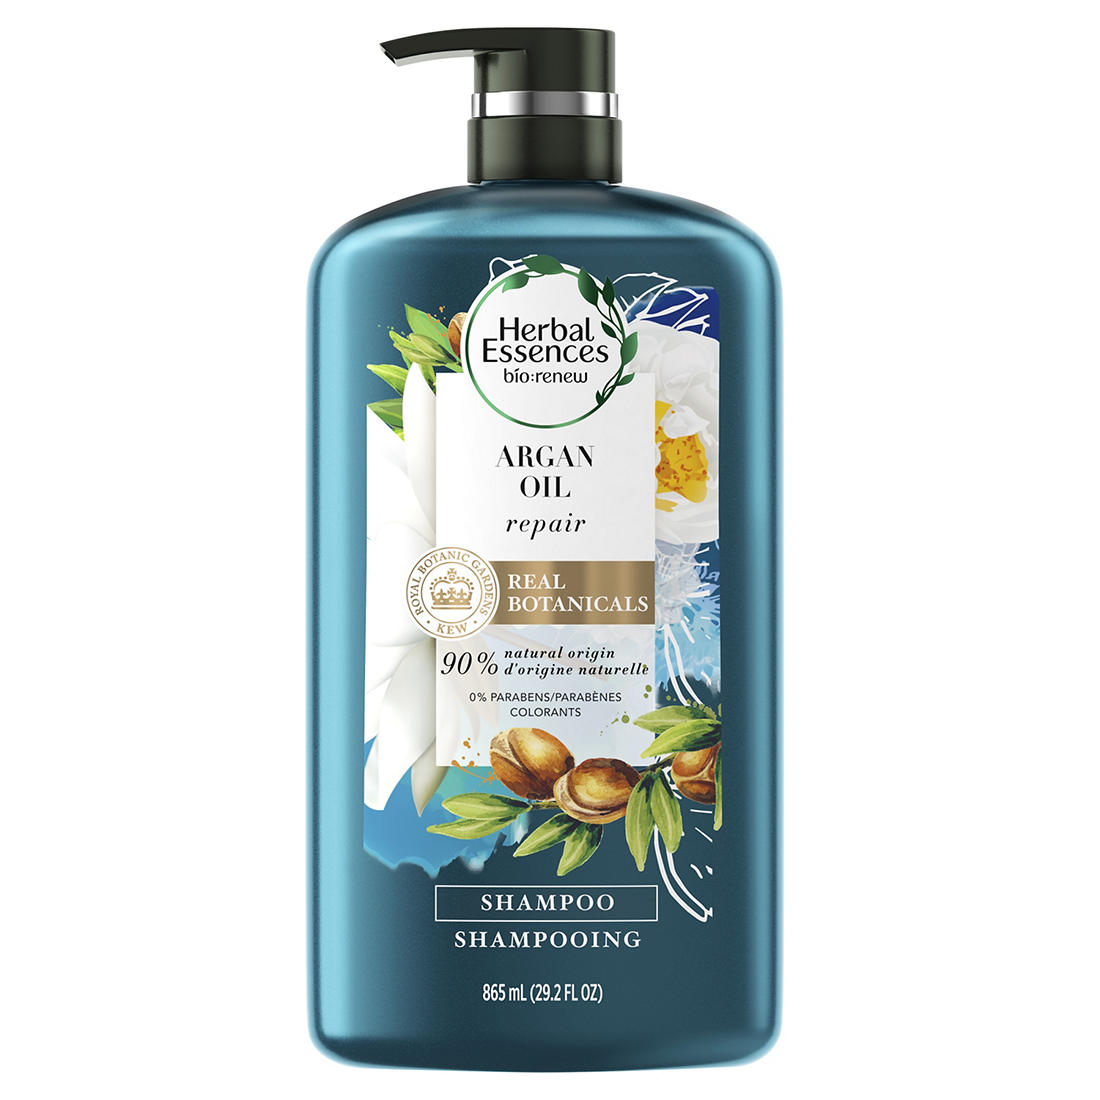 photograph relating to Herbal Essences Coupons Printable called Natural Essences bio:renew Argan Oil of Morocco Shampoo, 29.2 fl. oz.